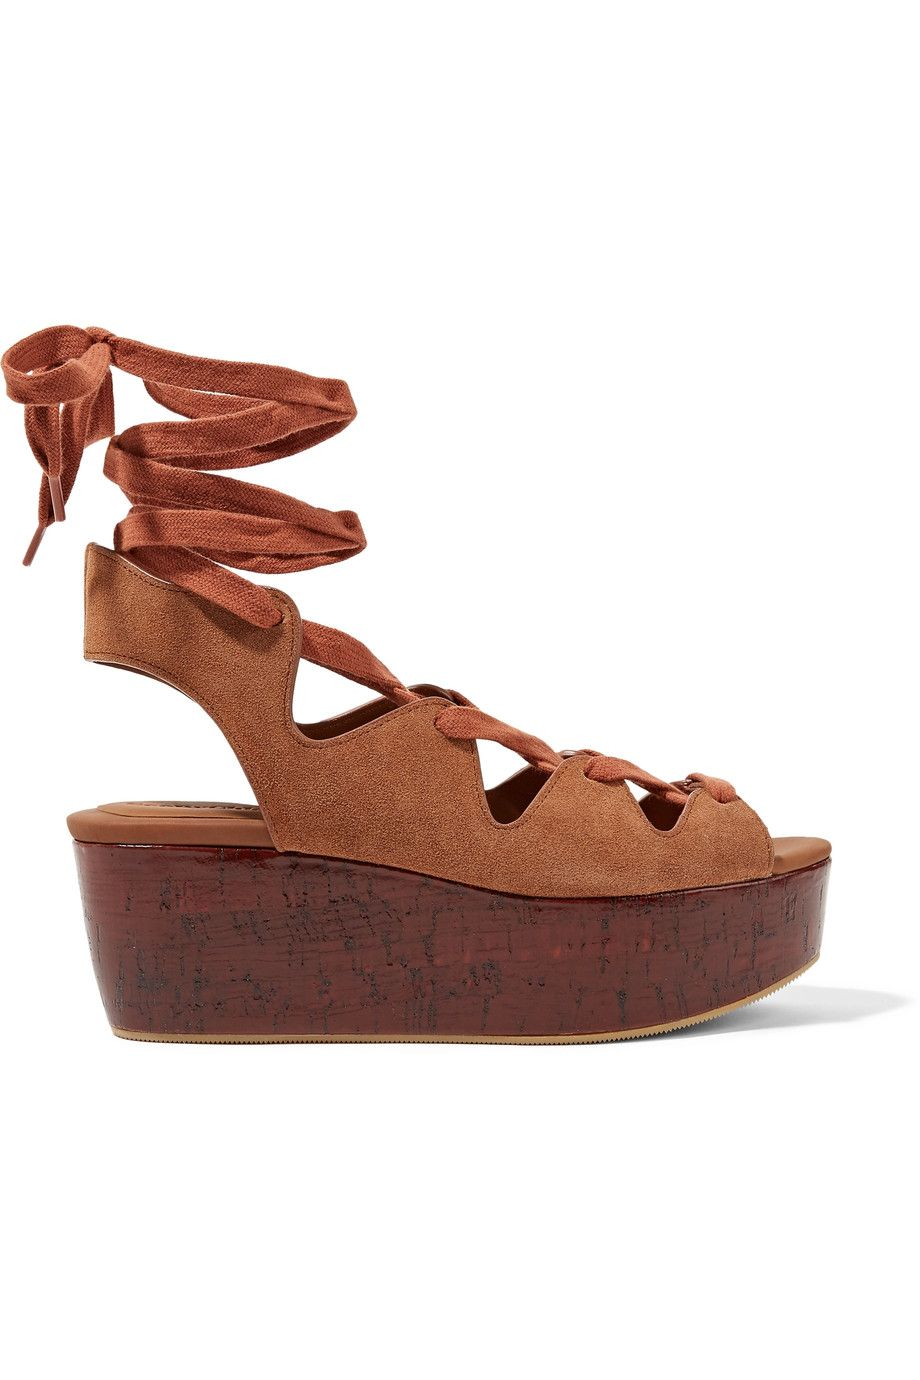 2e7c736251cc Comfortable Flatform Sandals for When You Don t Have Time for Stilettos -  SEE BY